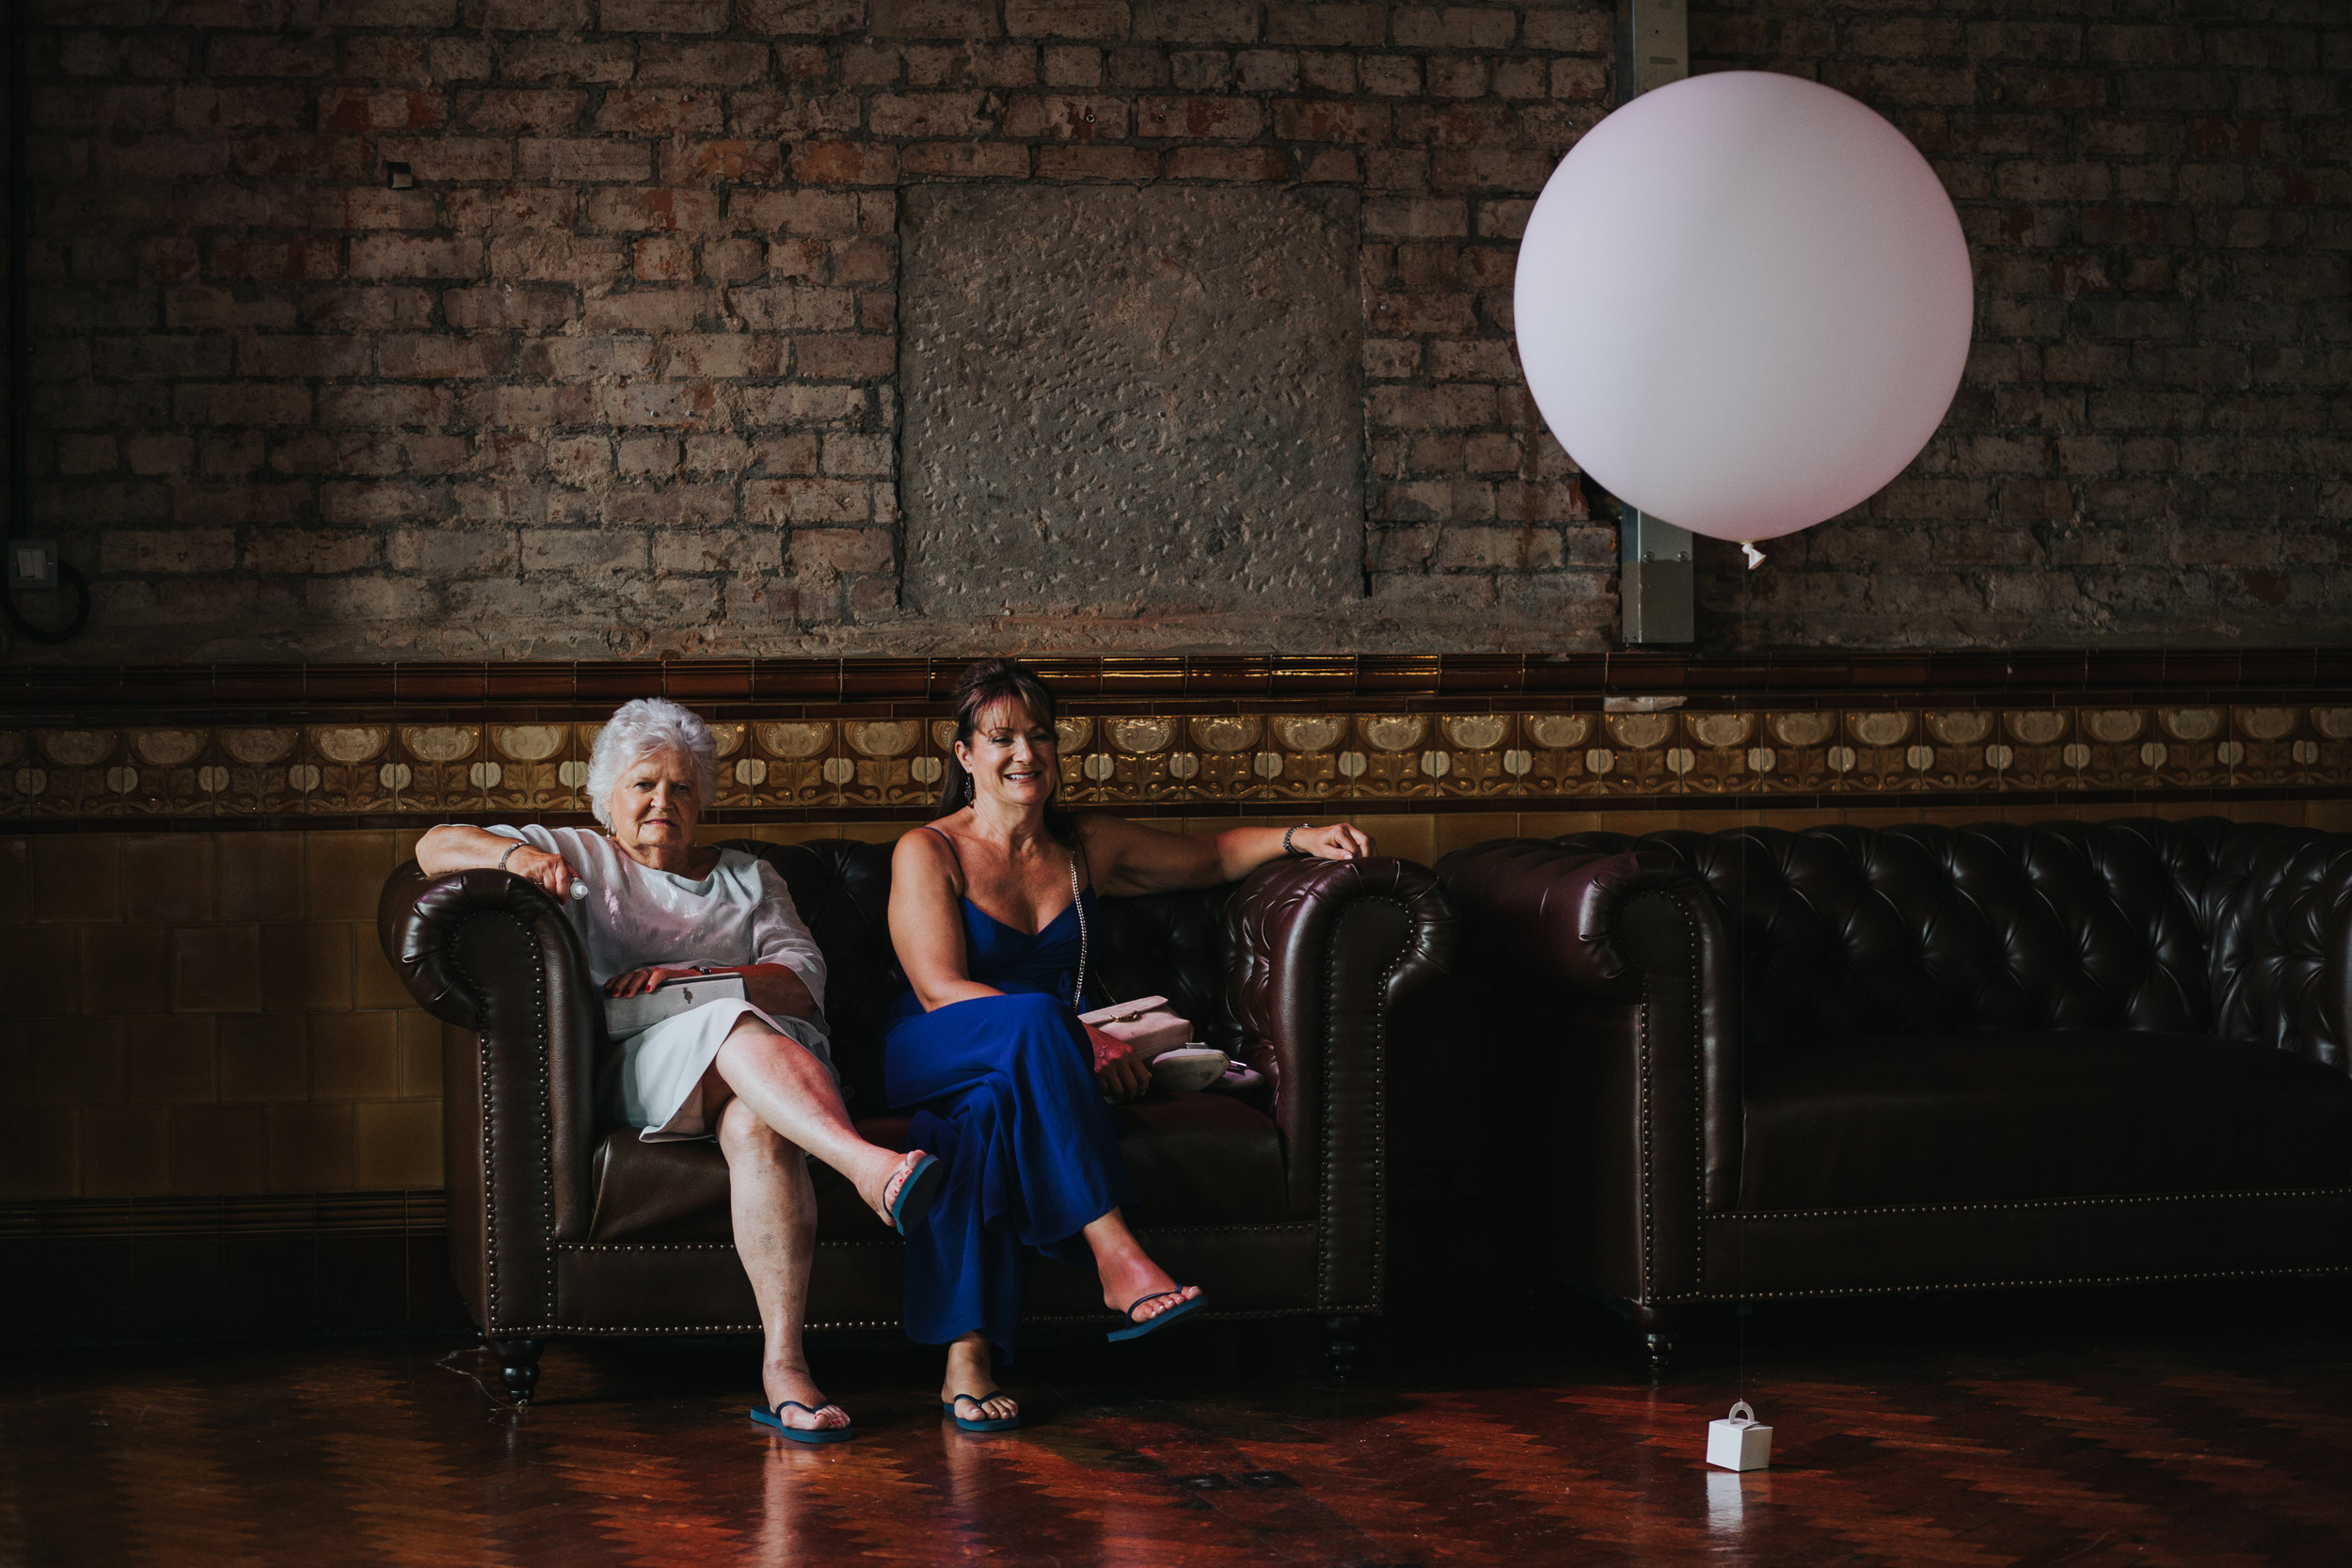 Two guests take refuge on a sofa next to a big white balloon.